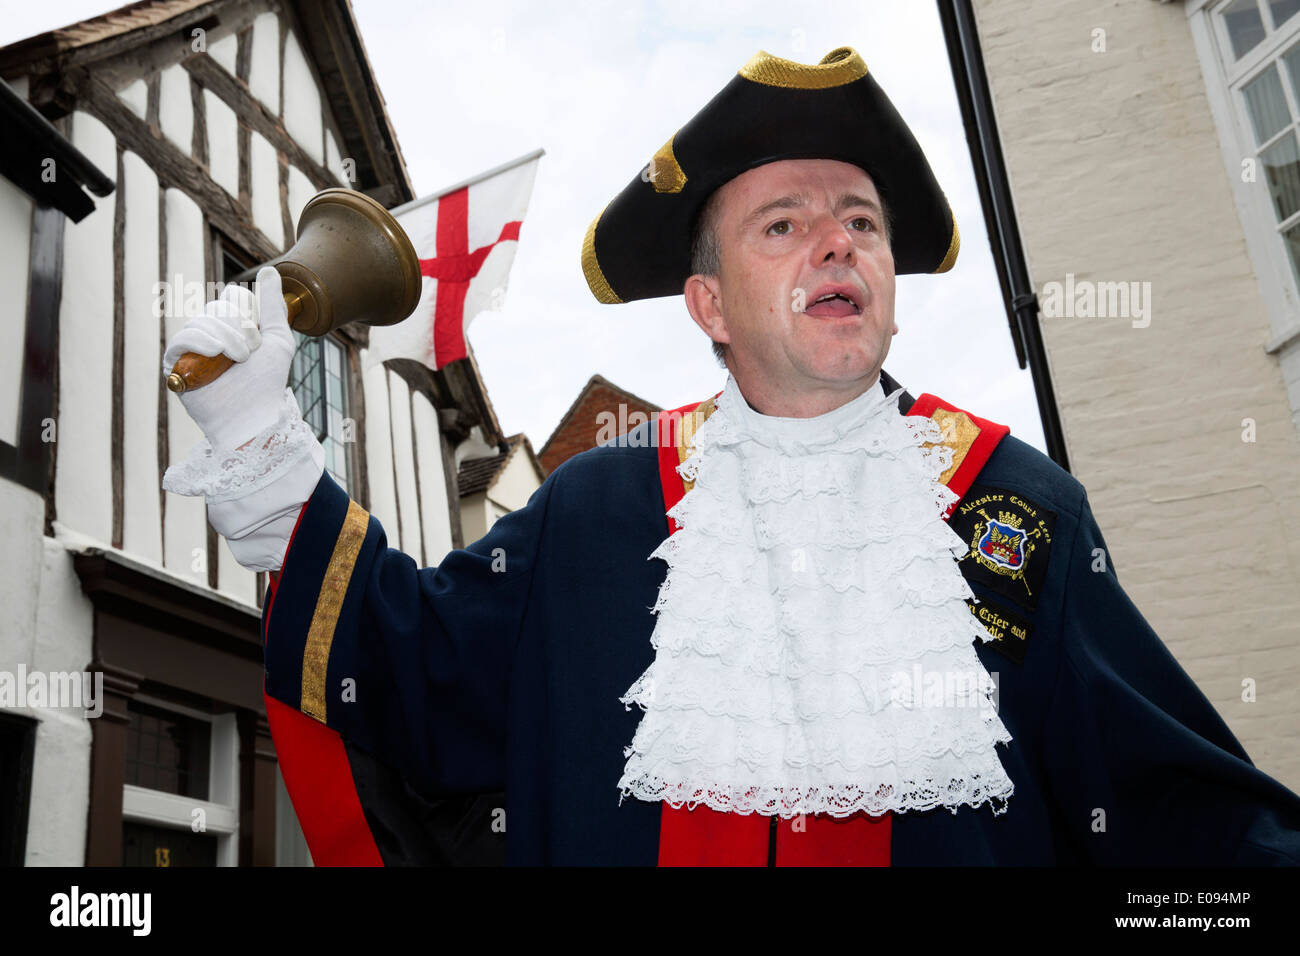 Alcester Town Crier David Parkes taking part in the St George's Day Parade - Stock Image